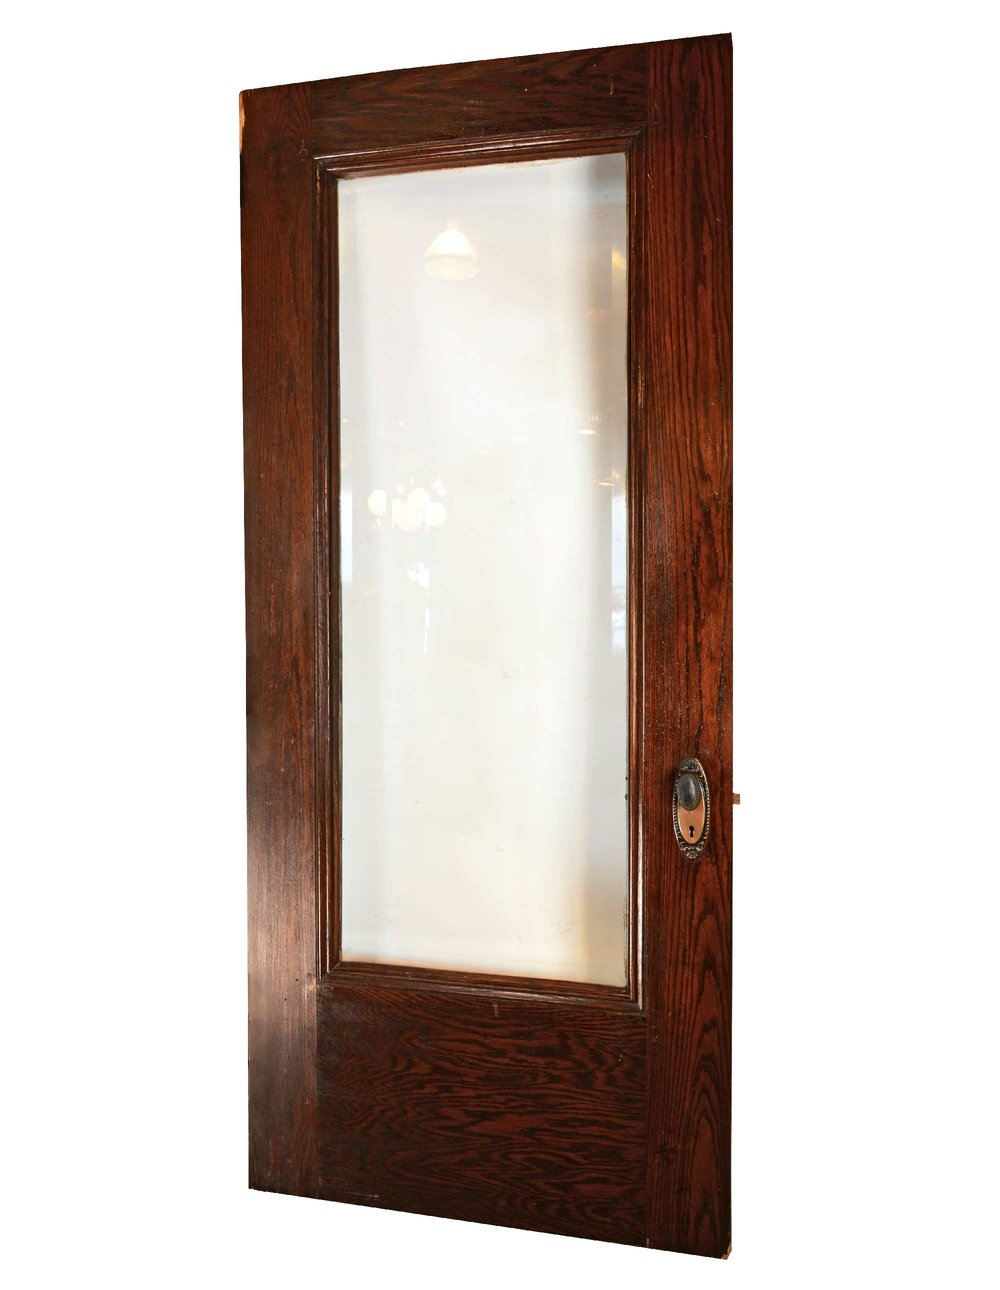 46824-full-view-door-with-beveled-glass-and-hardware-back.jpg